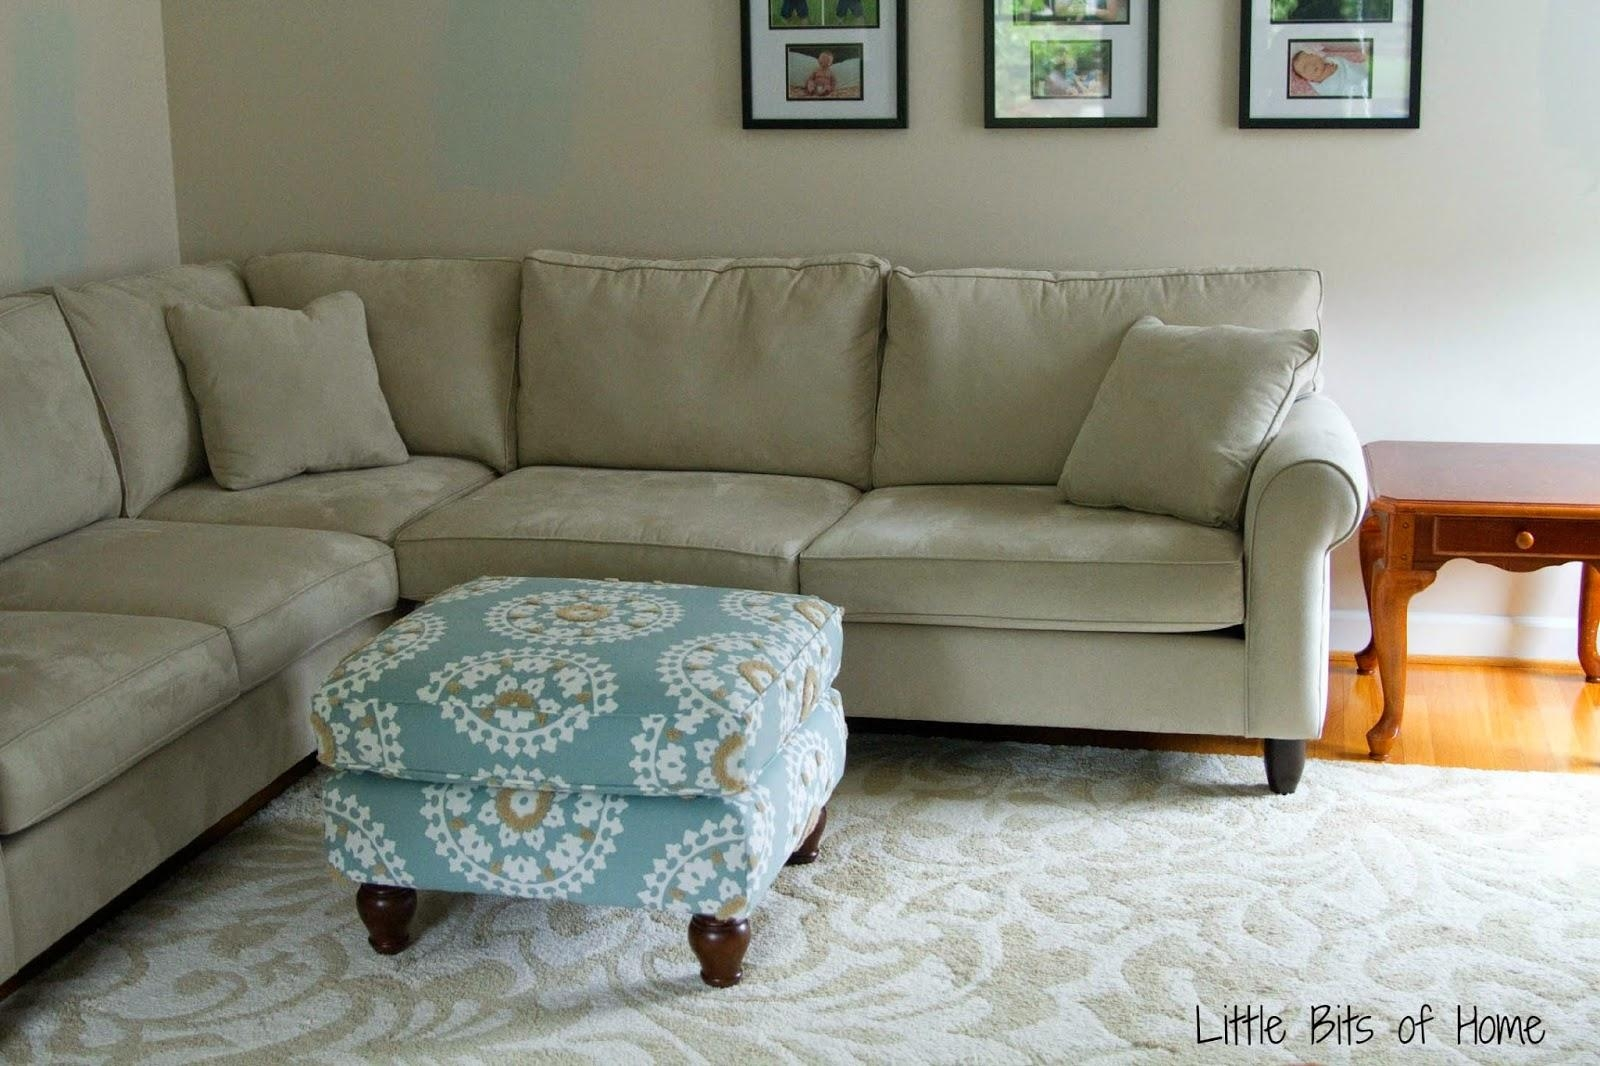 Furniture: Jackson Furniture Sectional | Value City Furniture For Havertys Leather Sectional (Image 7 of 15)